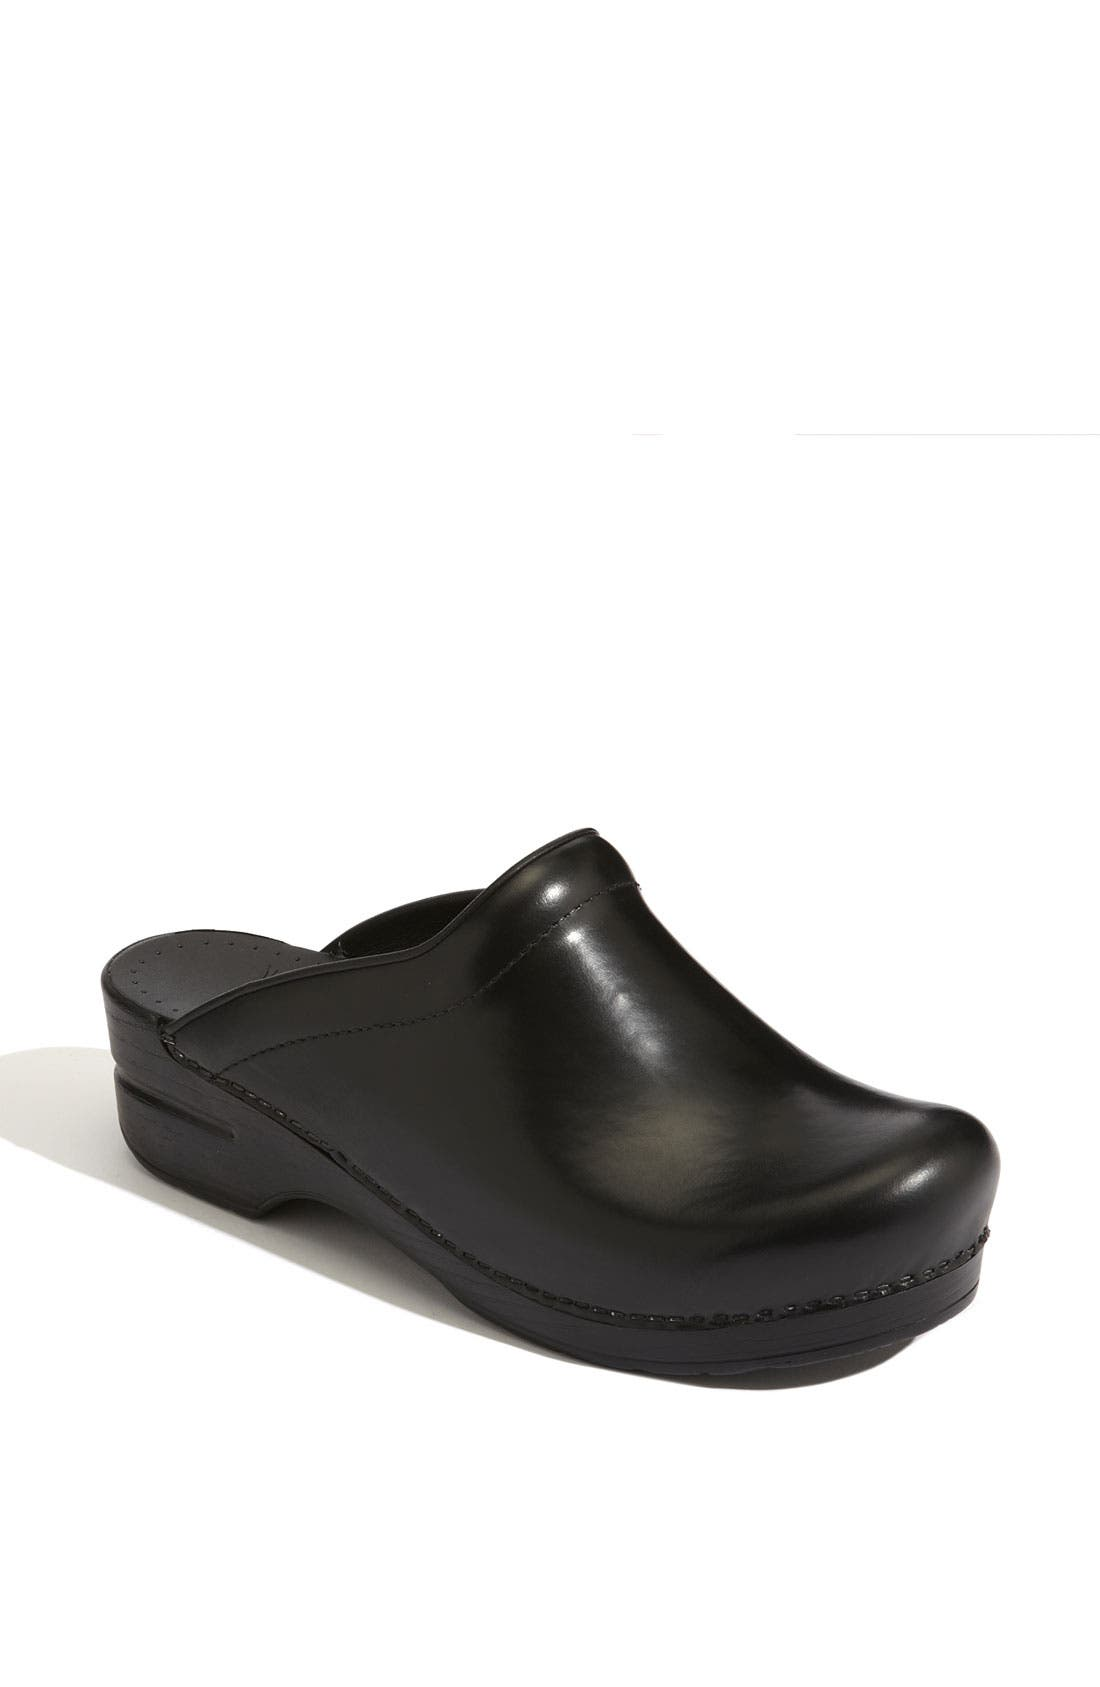 Alternate Image 1 Selected - Dansko 'Sonja' Leather Clog